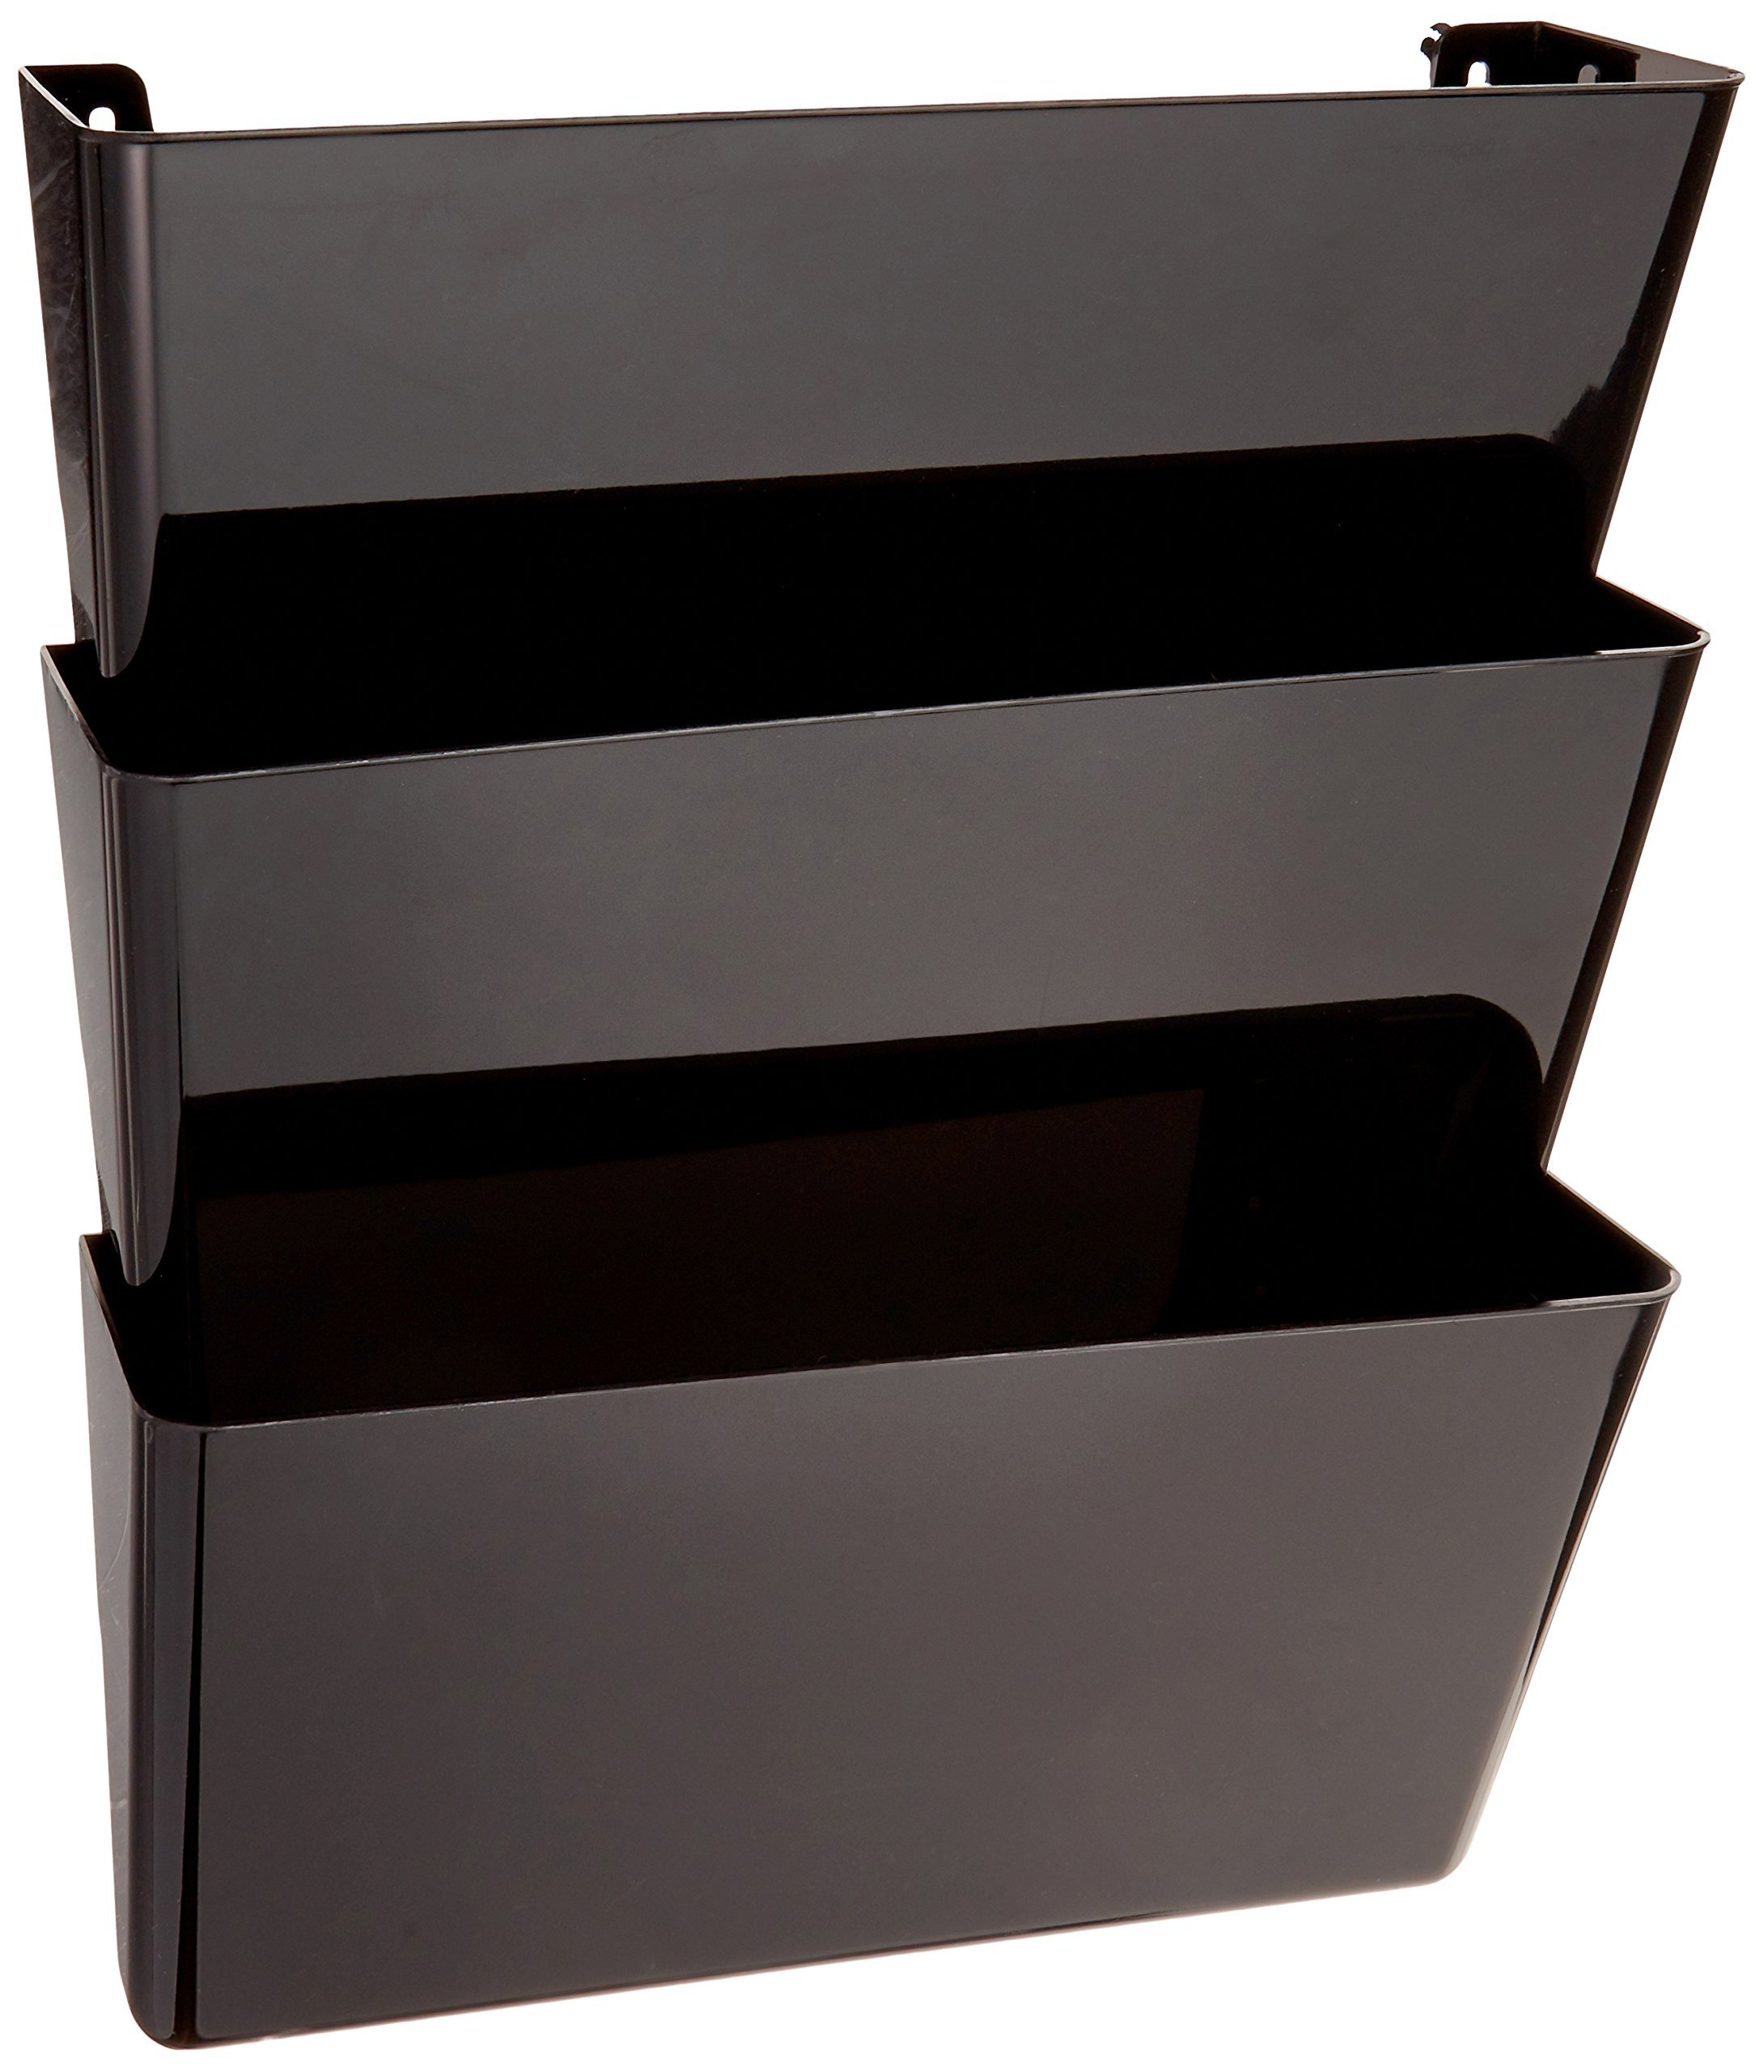 Deflecto 93604 Sustainable Office DocuPocket, Recycled Content, Wall File Organizer, Stackable, Letter Size, Black, Set of 3, 13''W x 7''H x 4''D by Deflecto